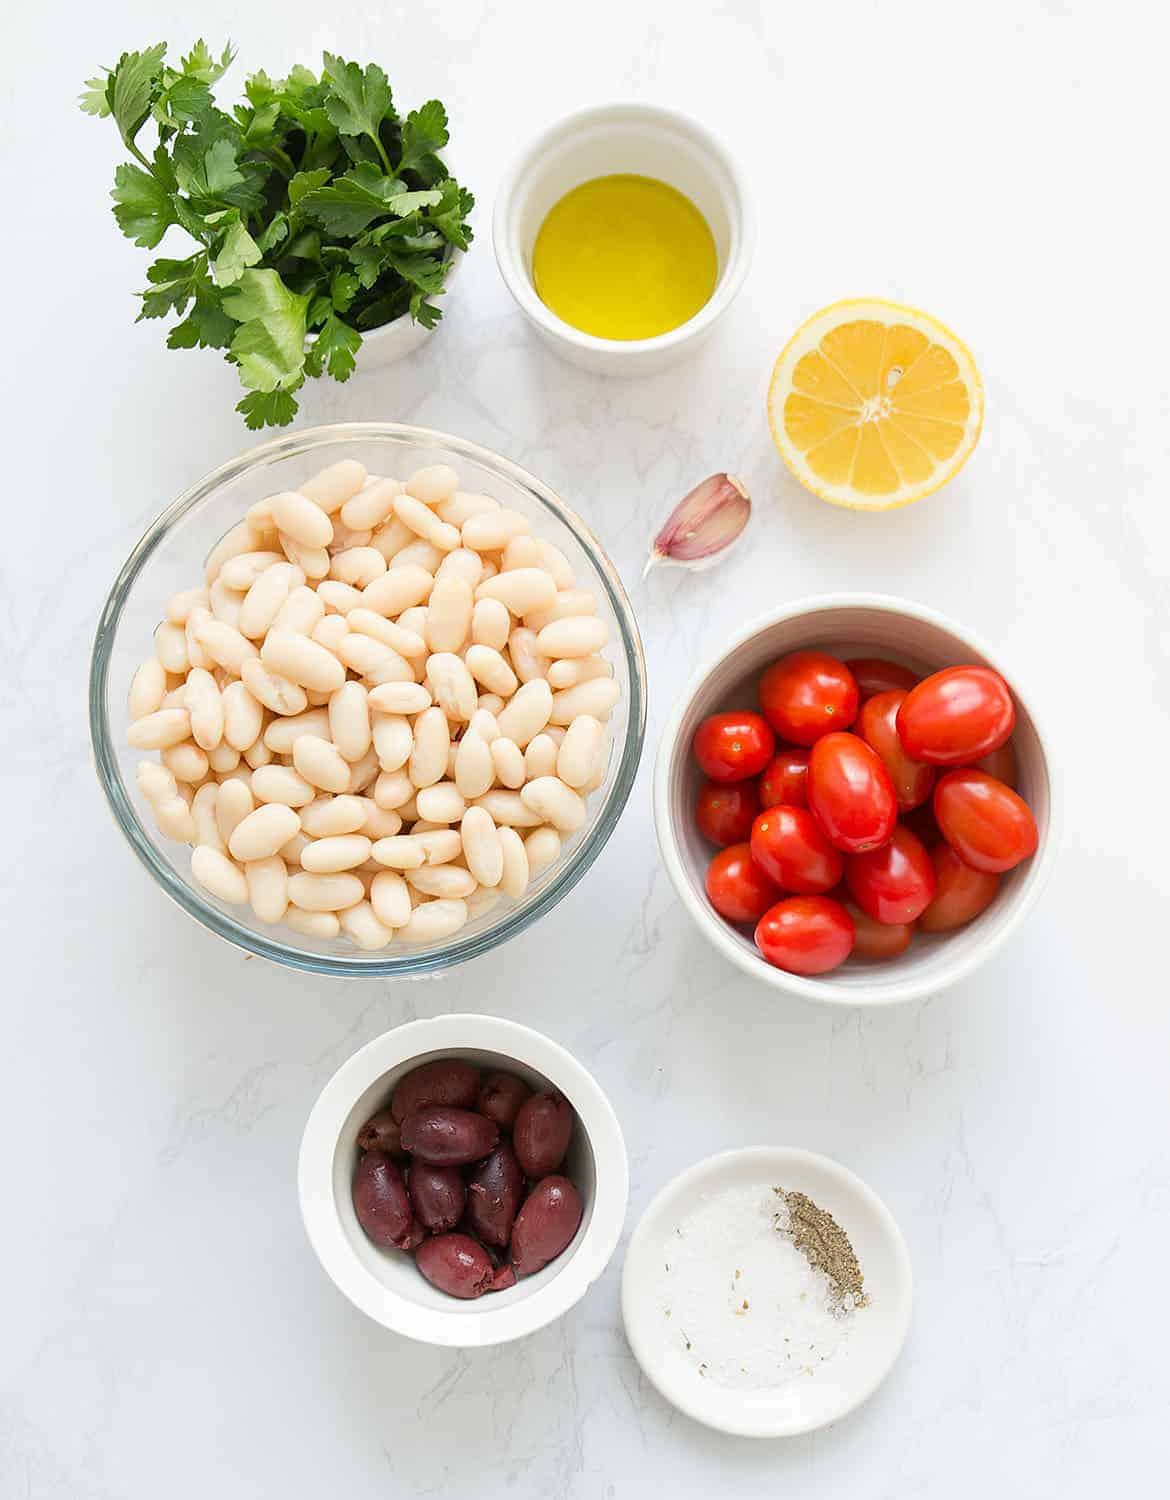 Ingredients to make this cannellini bean salad.